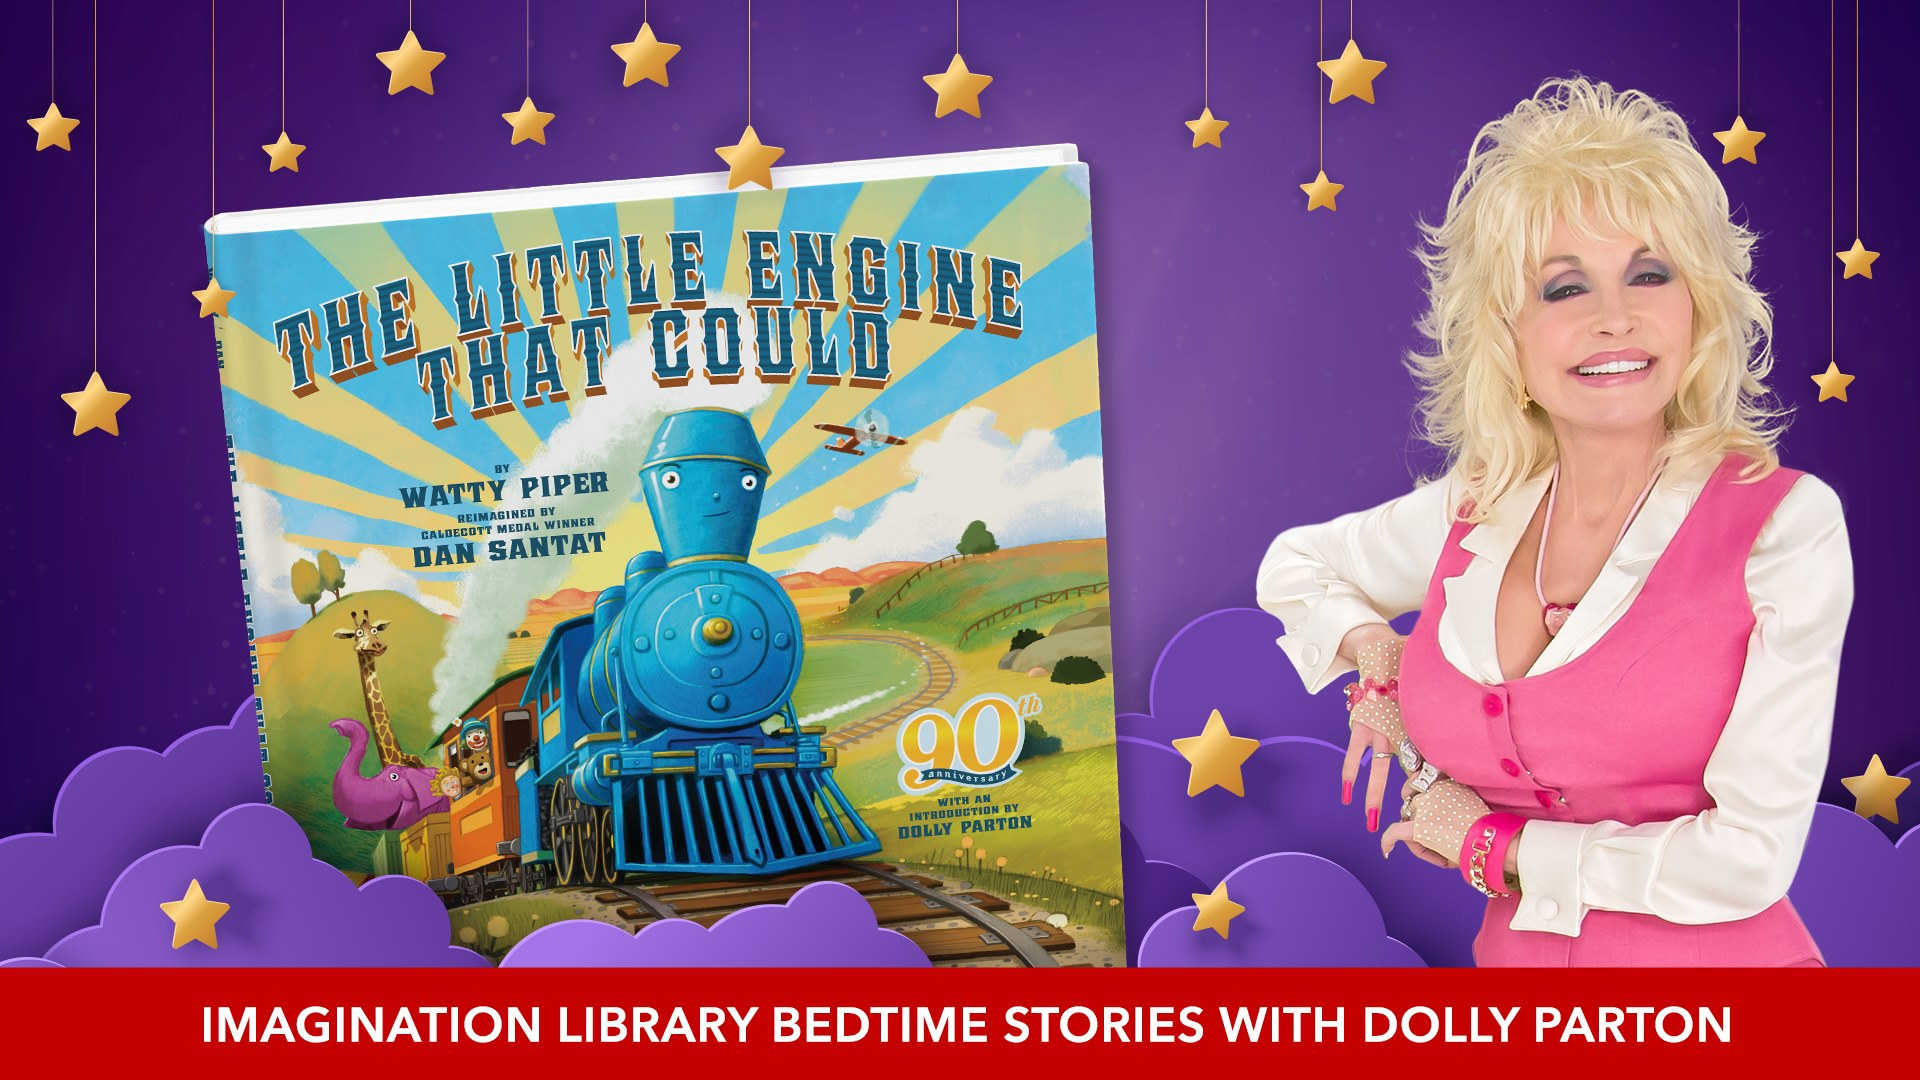 Goodnight with Dolly Parton bedtime story time online each Thursday